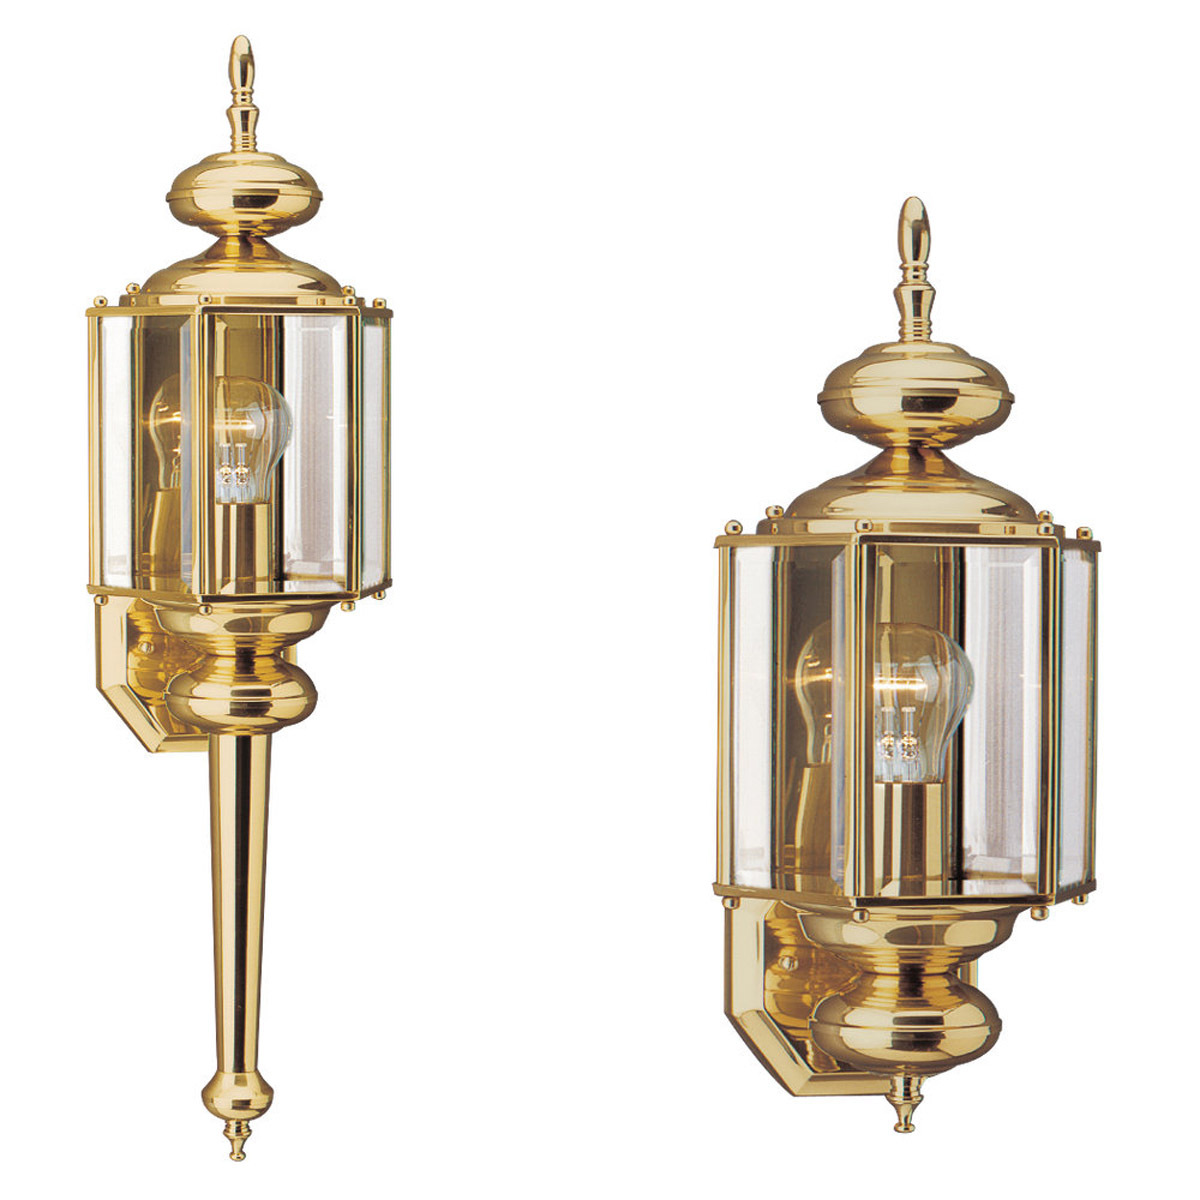 Sea Gull 8510-02 Classico 1 Light 26 inch Polished Brass Outdoor Wall Lantern photo